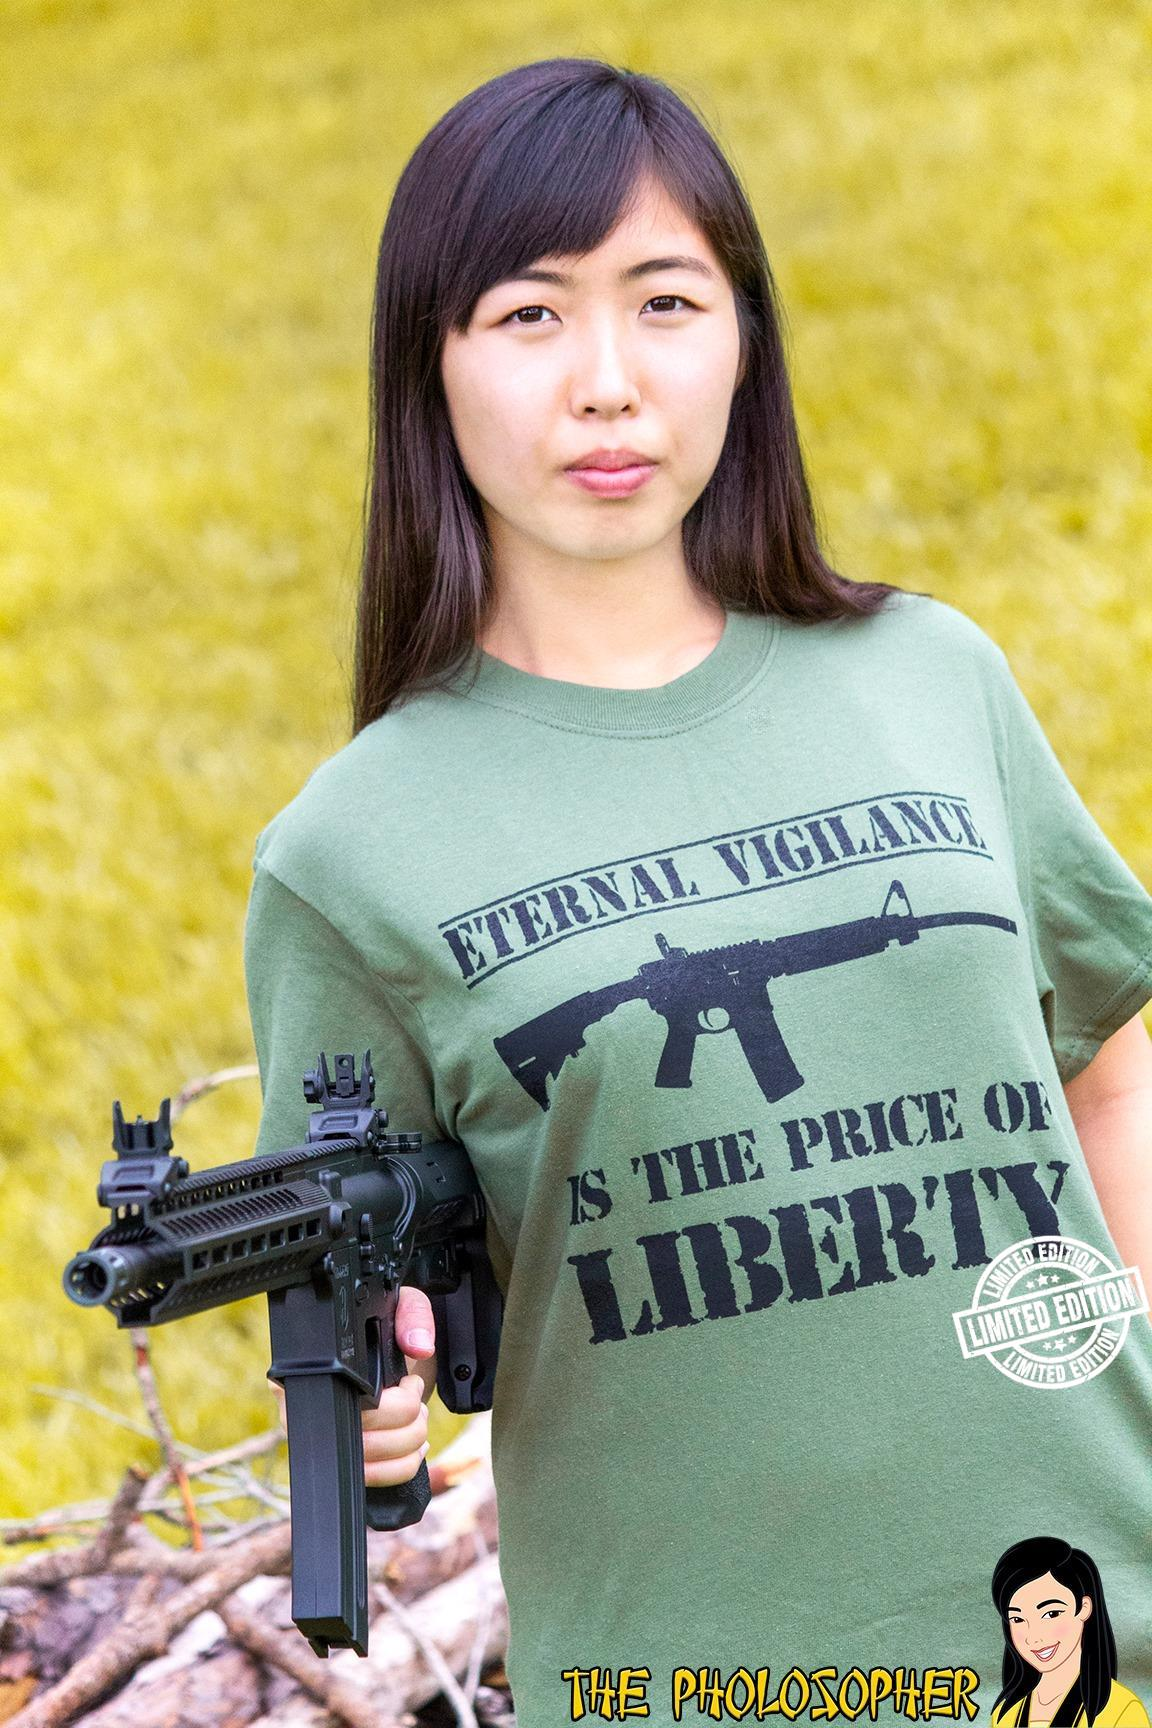 Eternal vigilance is the price of liberty shirt